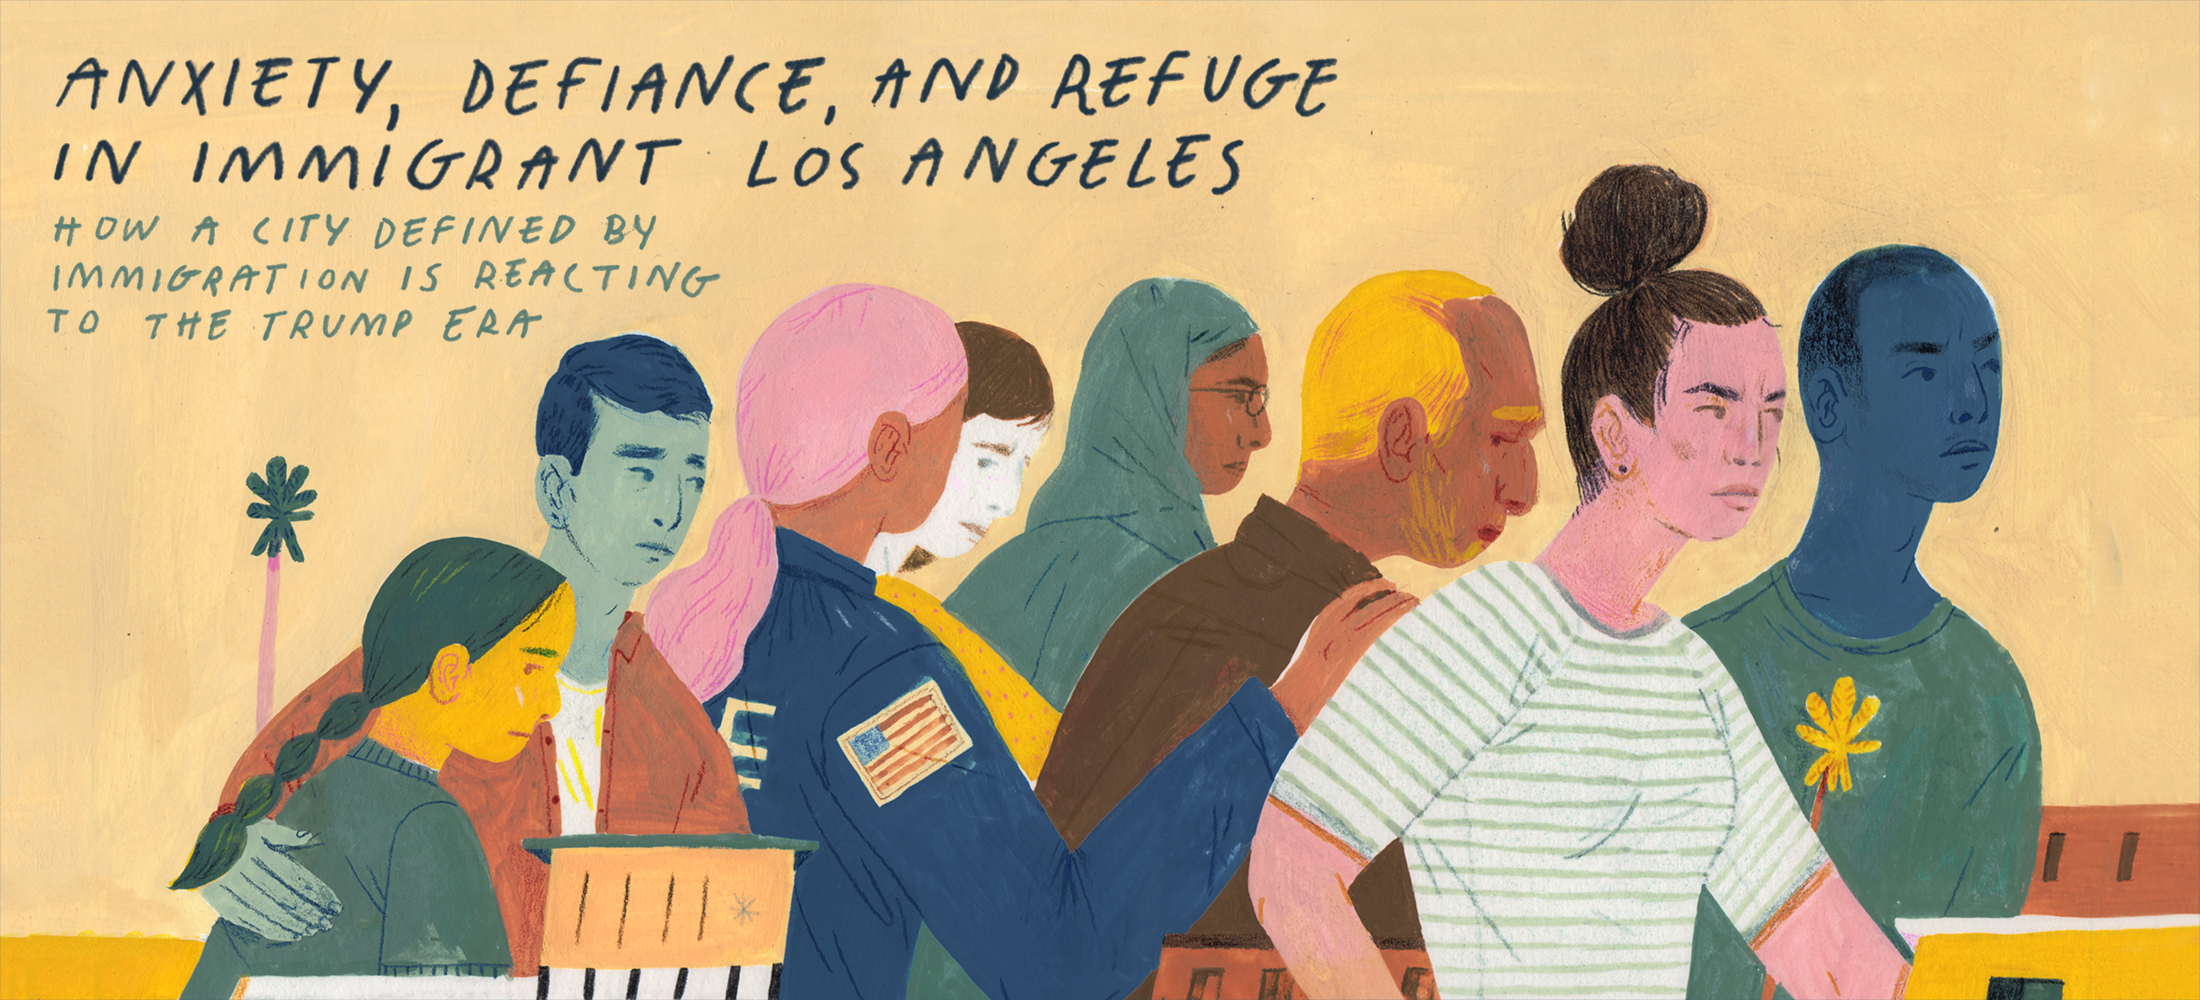 Anxiety, Defiance, and Refuge in Immigrant Los Angeles